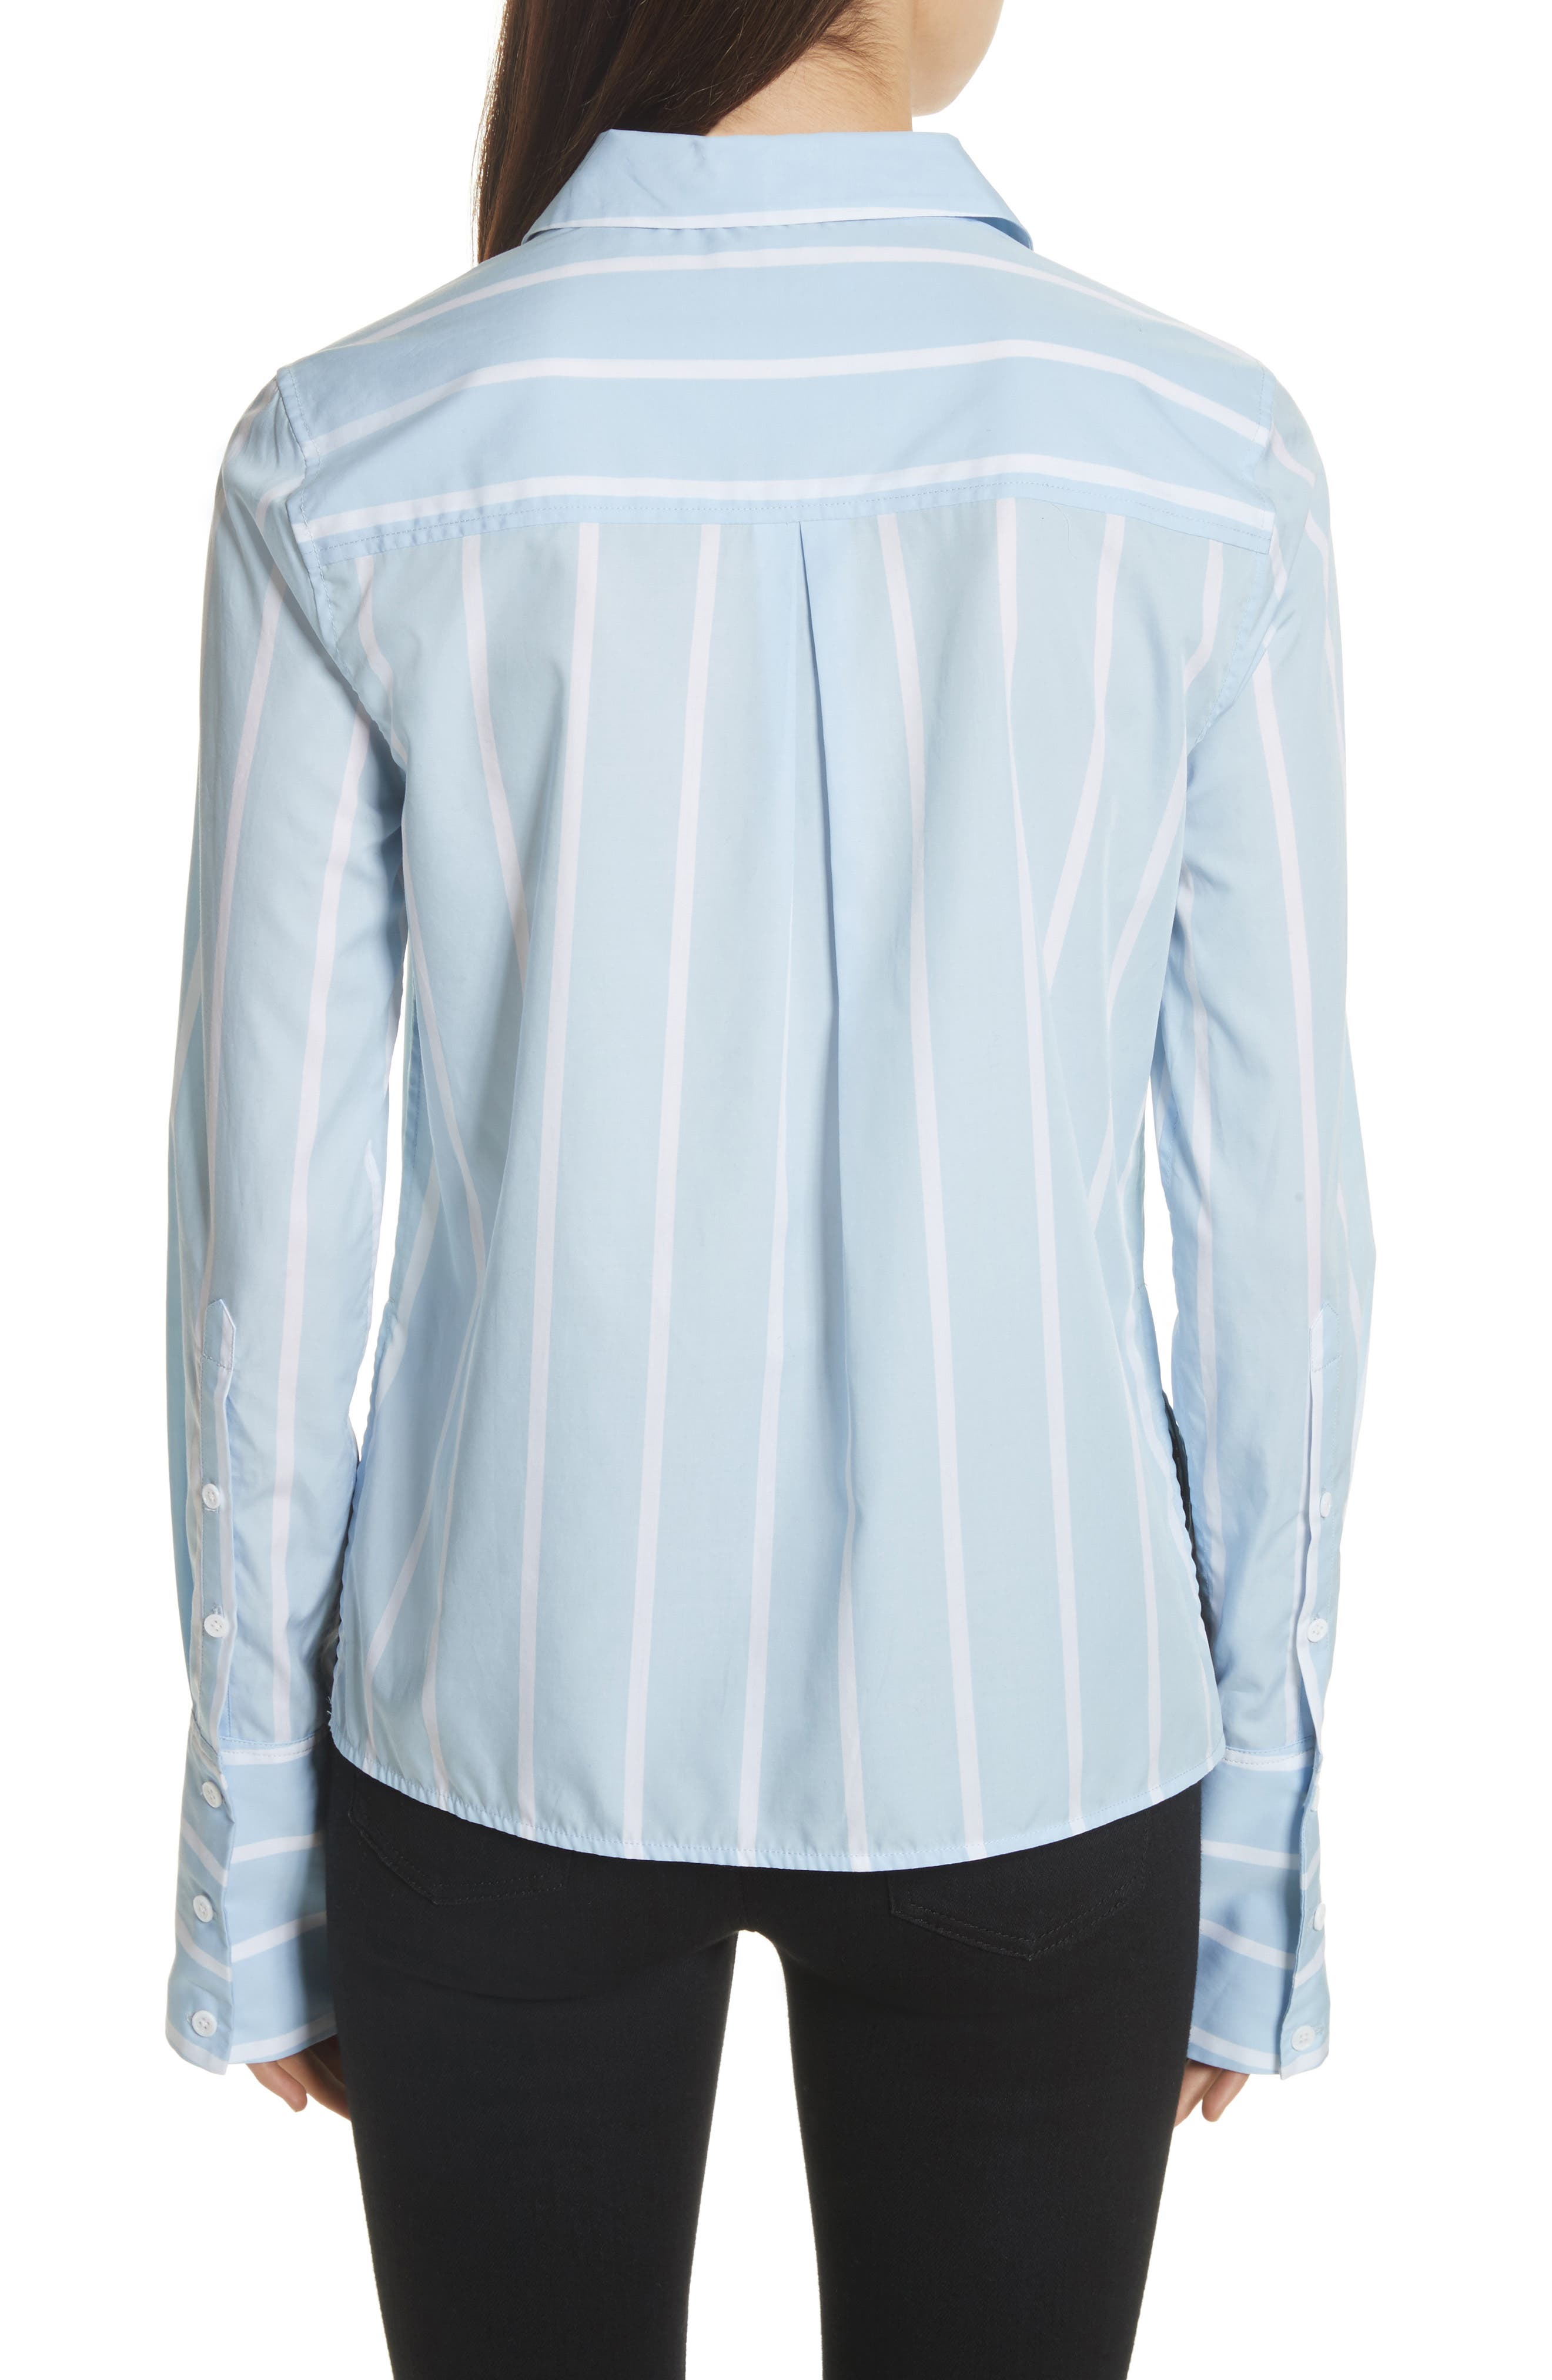 Huntley Embroidered Stripe Cotton Shirt,                             Alternate thumbnail 2, color,                             Skylight / Bright White